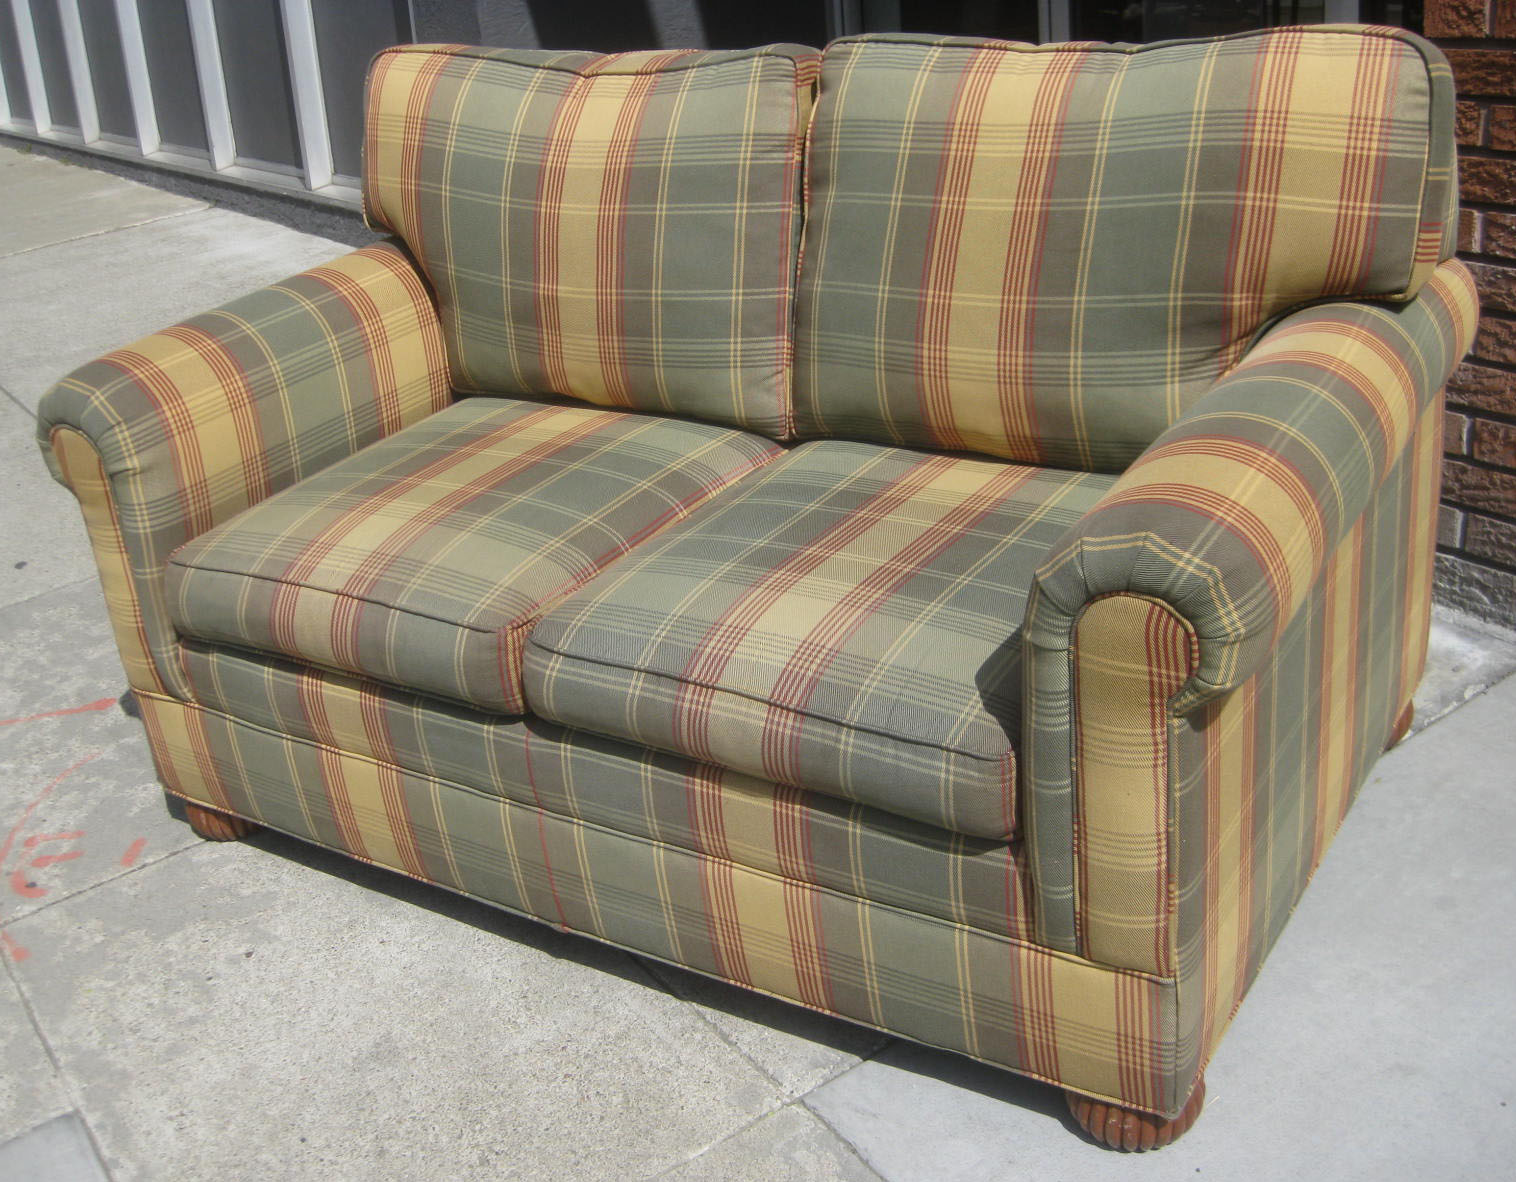 Plaid Sofa And Loveseat Mod The Sims Really Distressed Sofa By Club Distress Plus Recolours